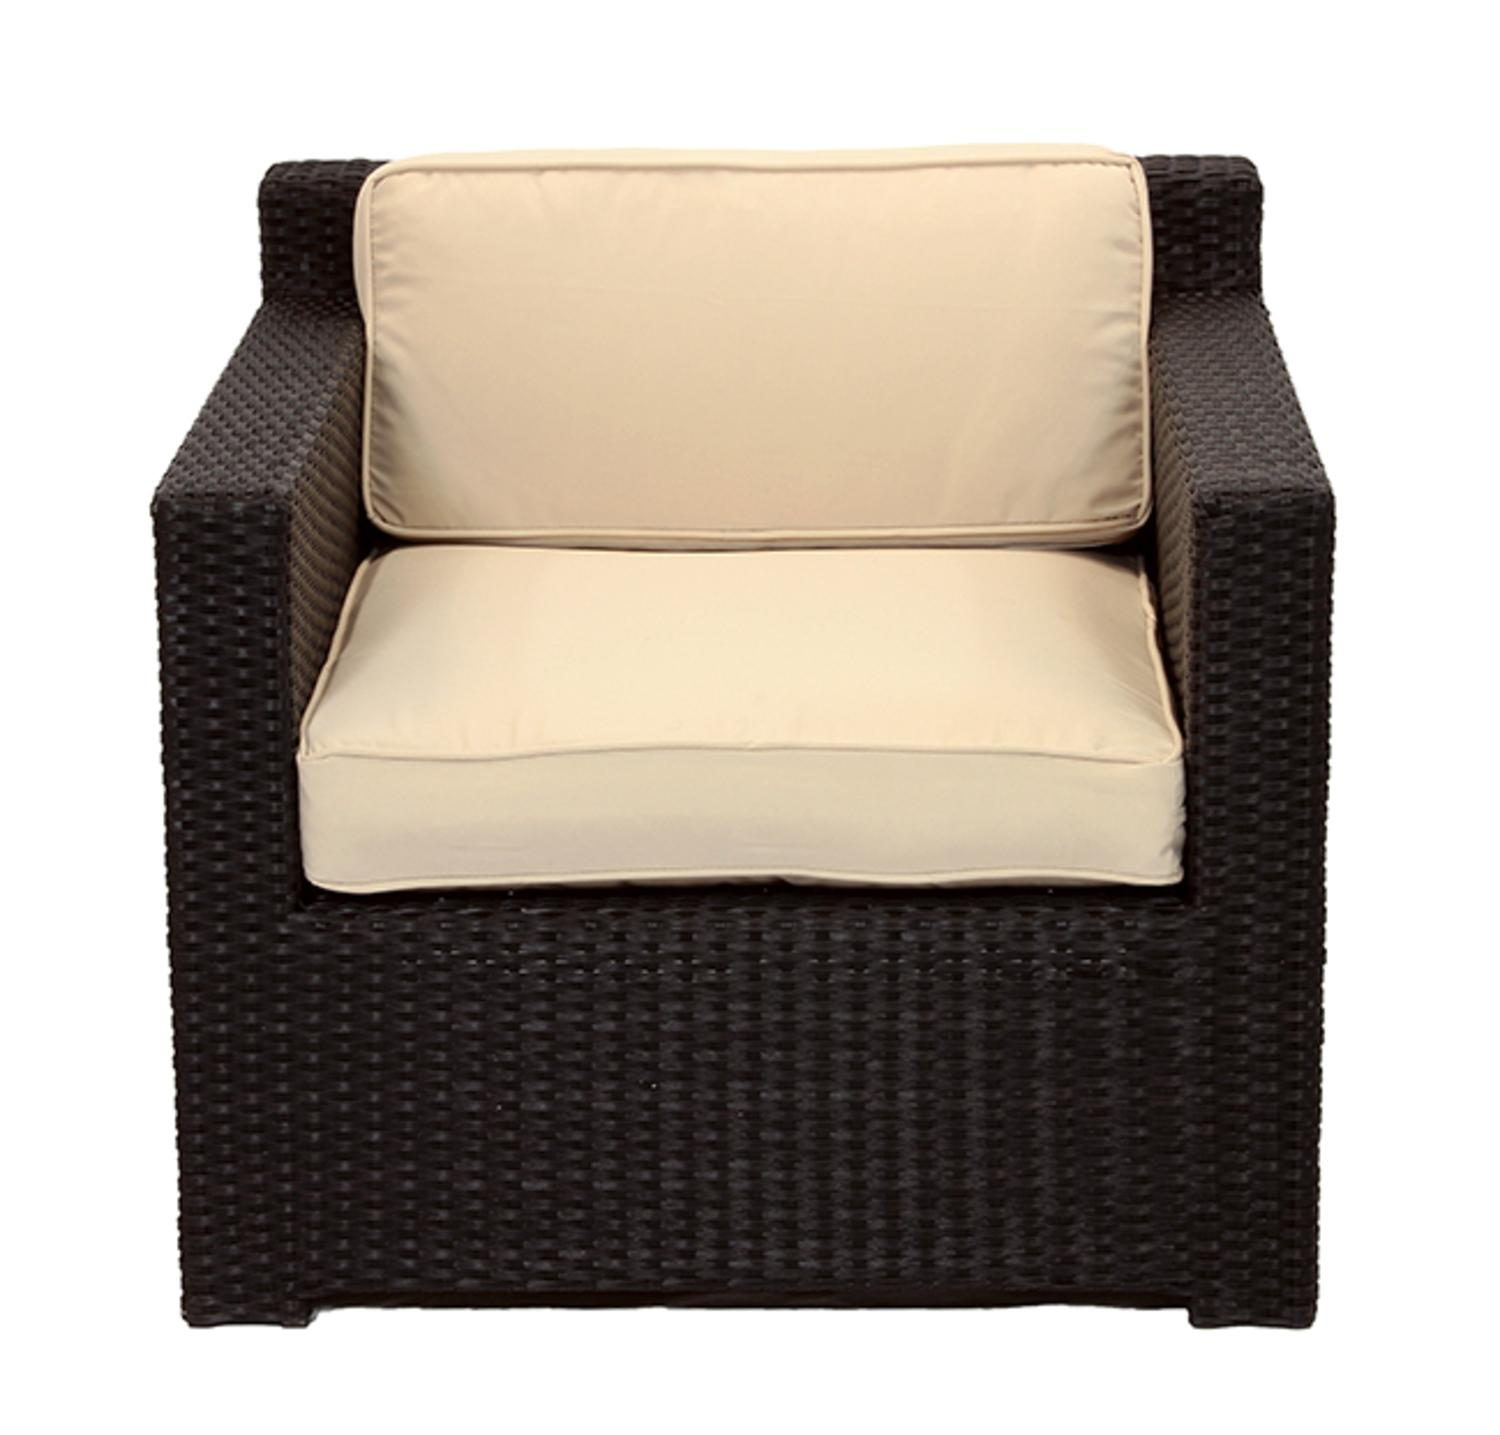 3 Piece Black Resin Wicker Outdoor Patio Furniture Set Beige